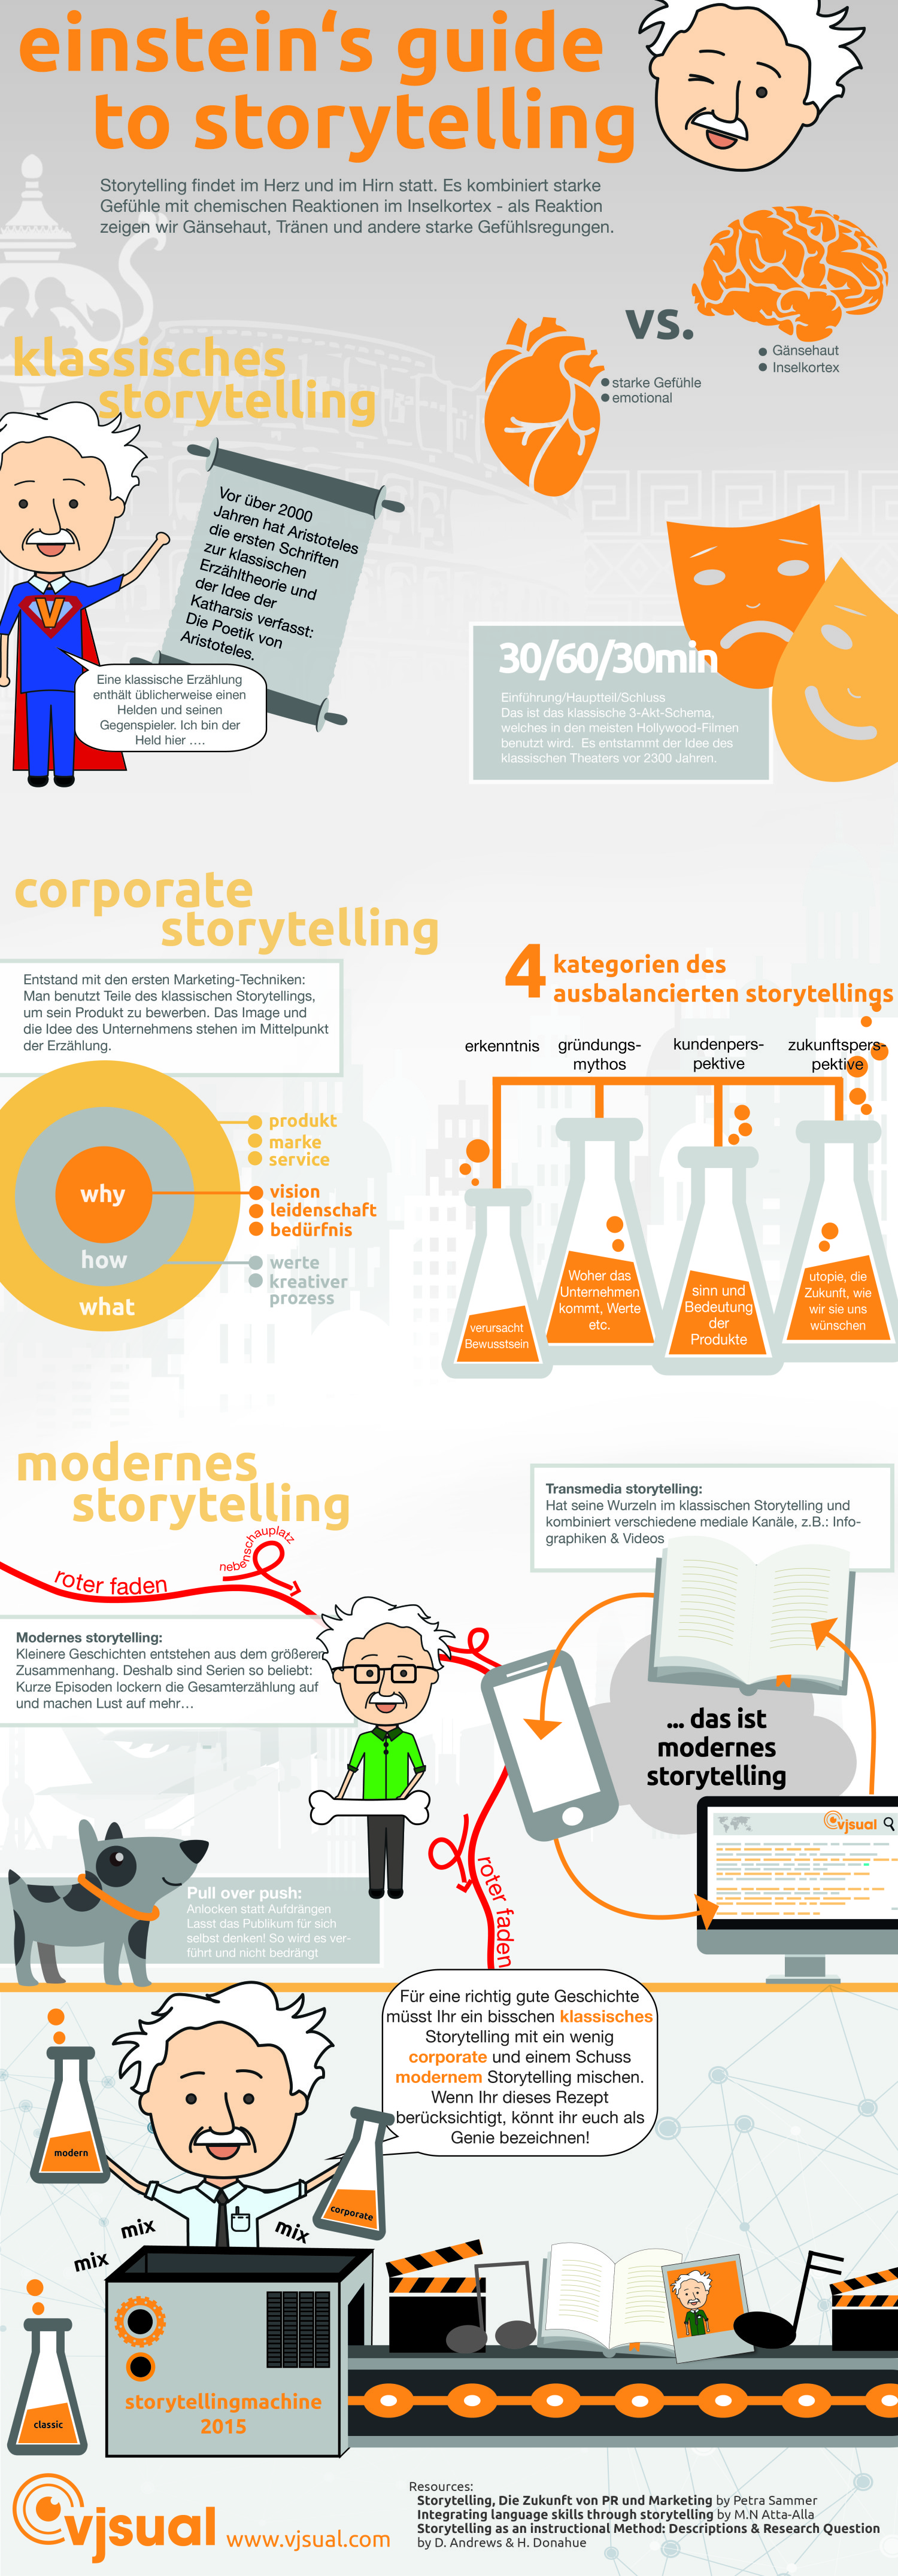 Einstein's guide to storytelling - DE